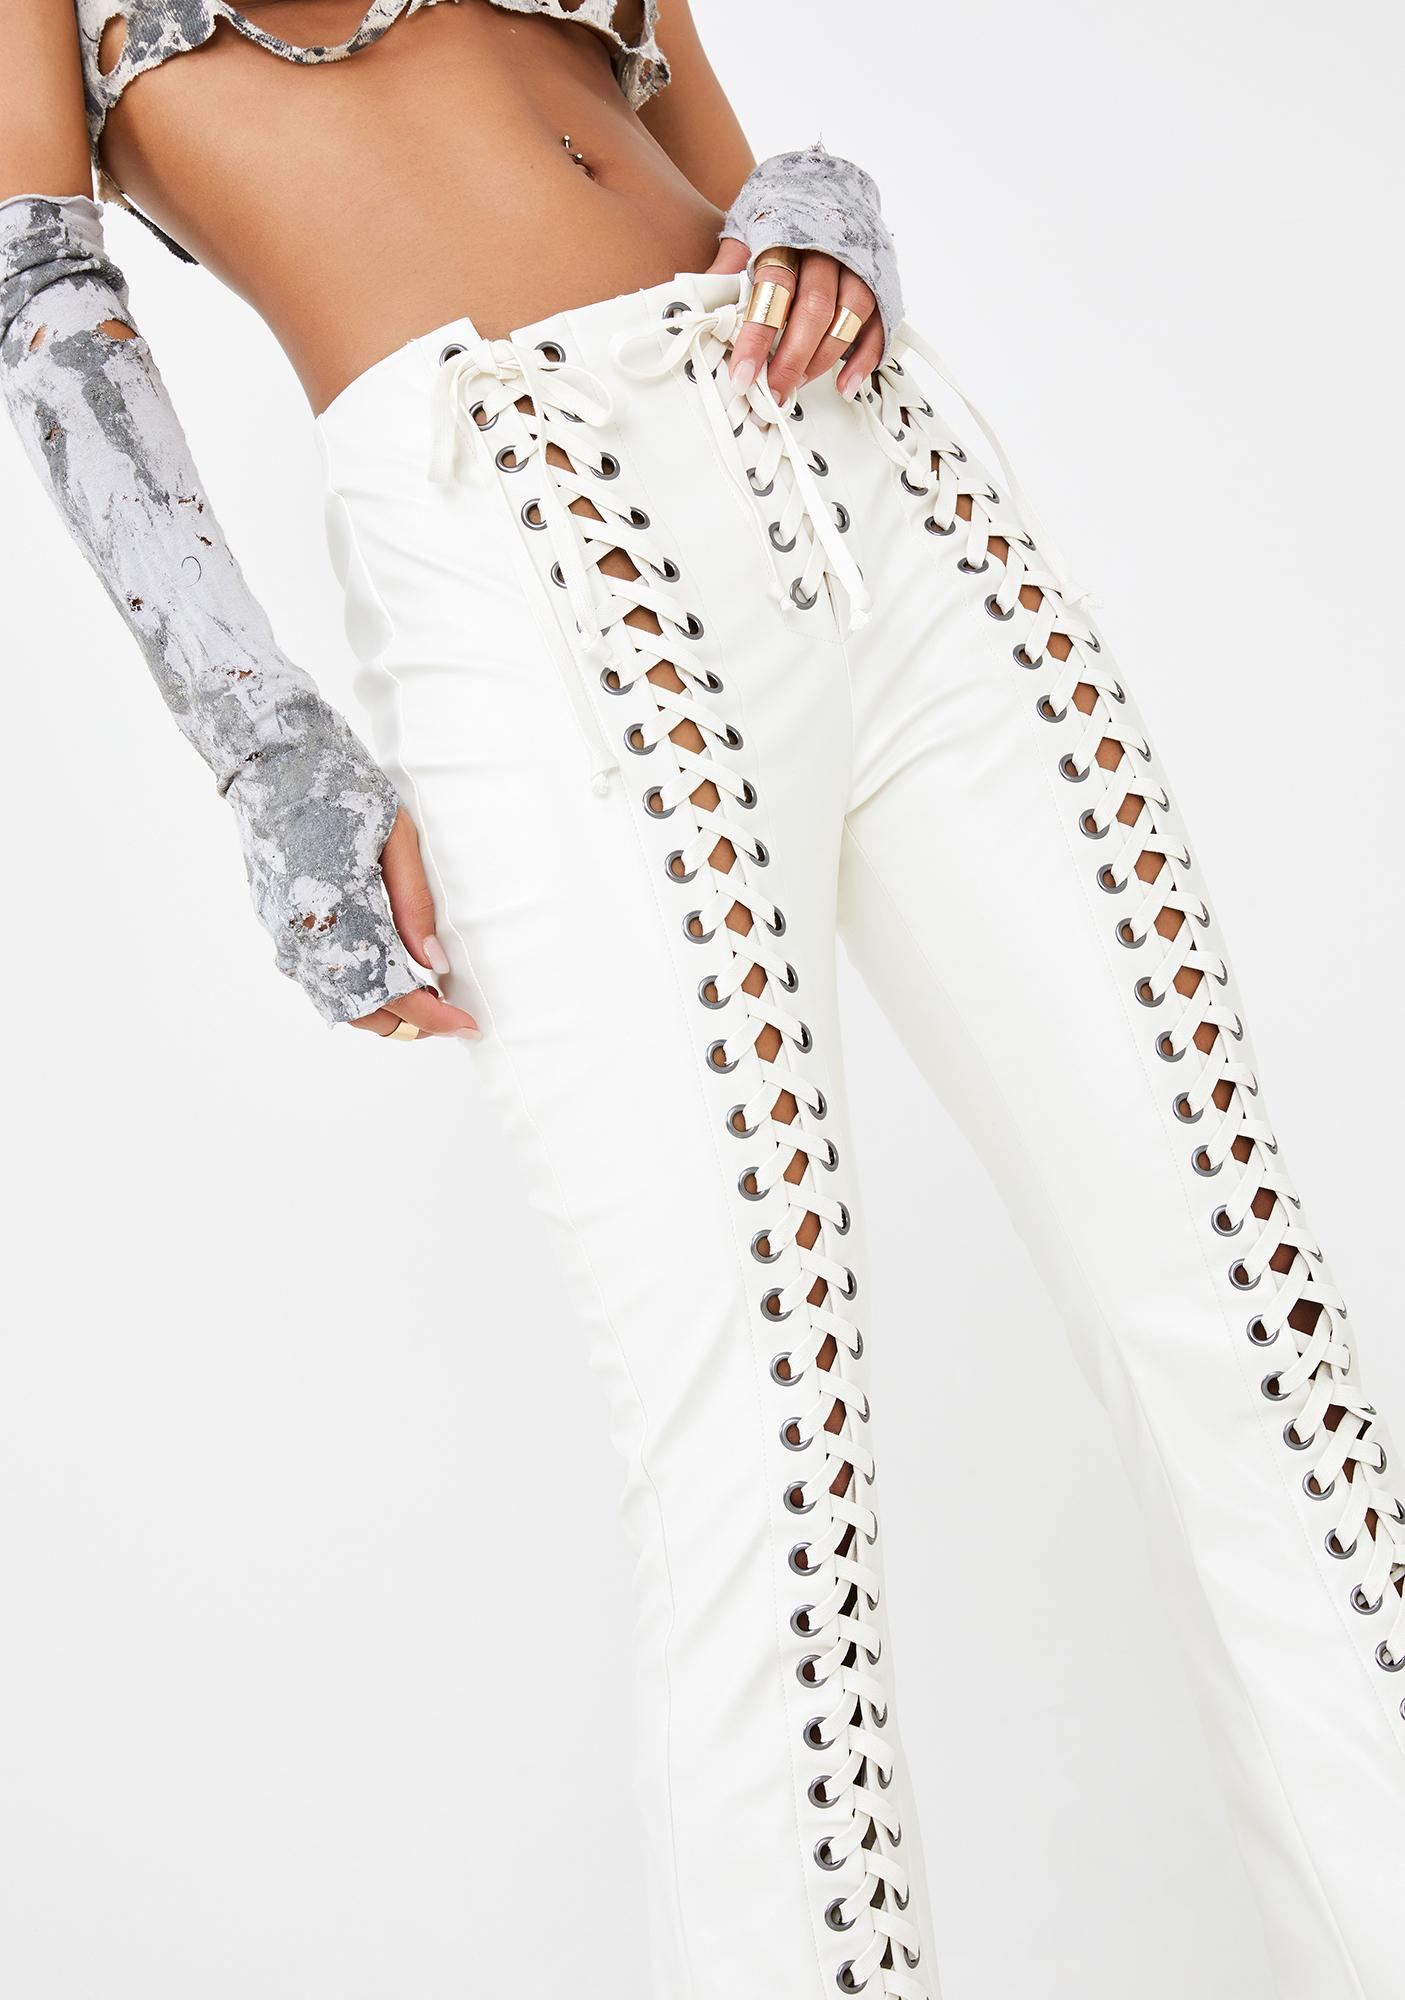 Club Exx Rude Awakening Lace-Up Pants